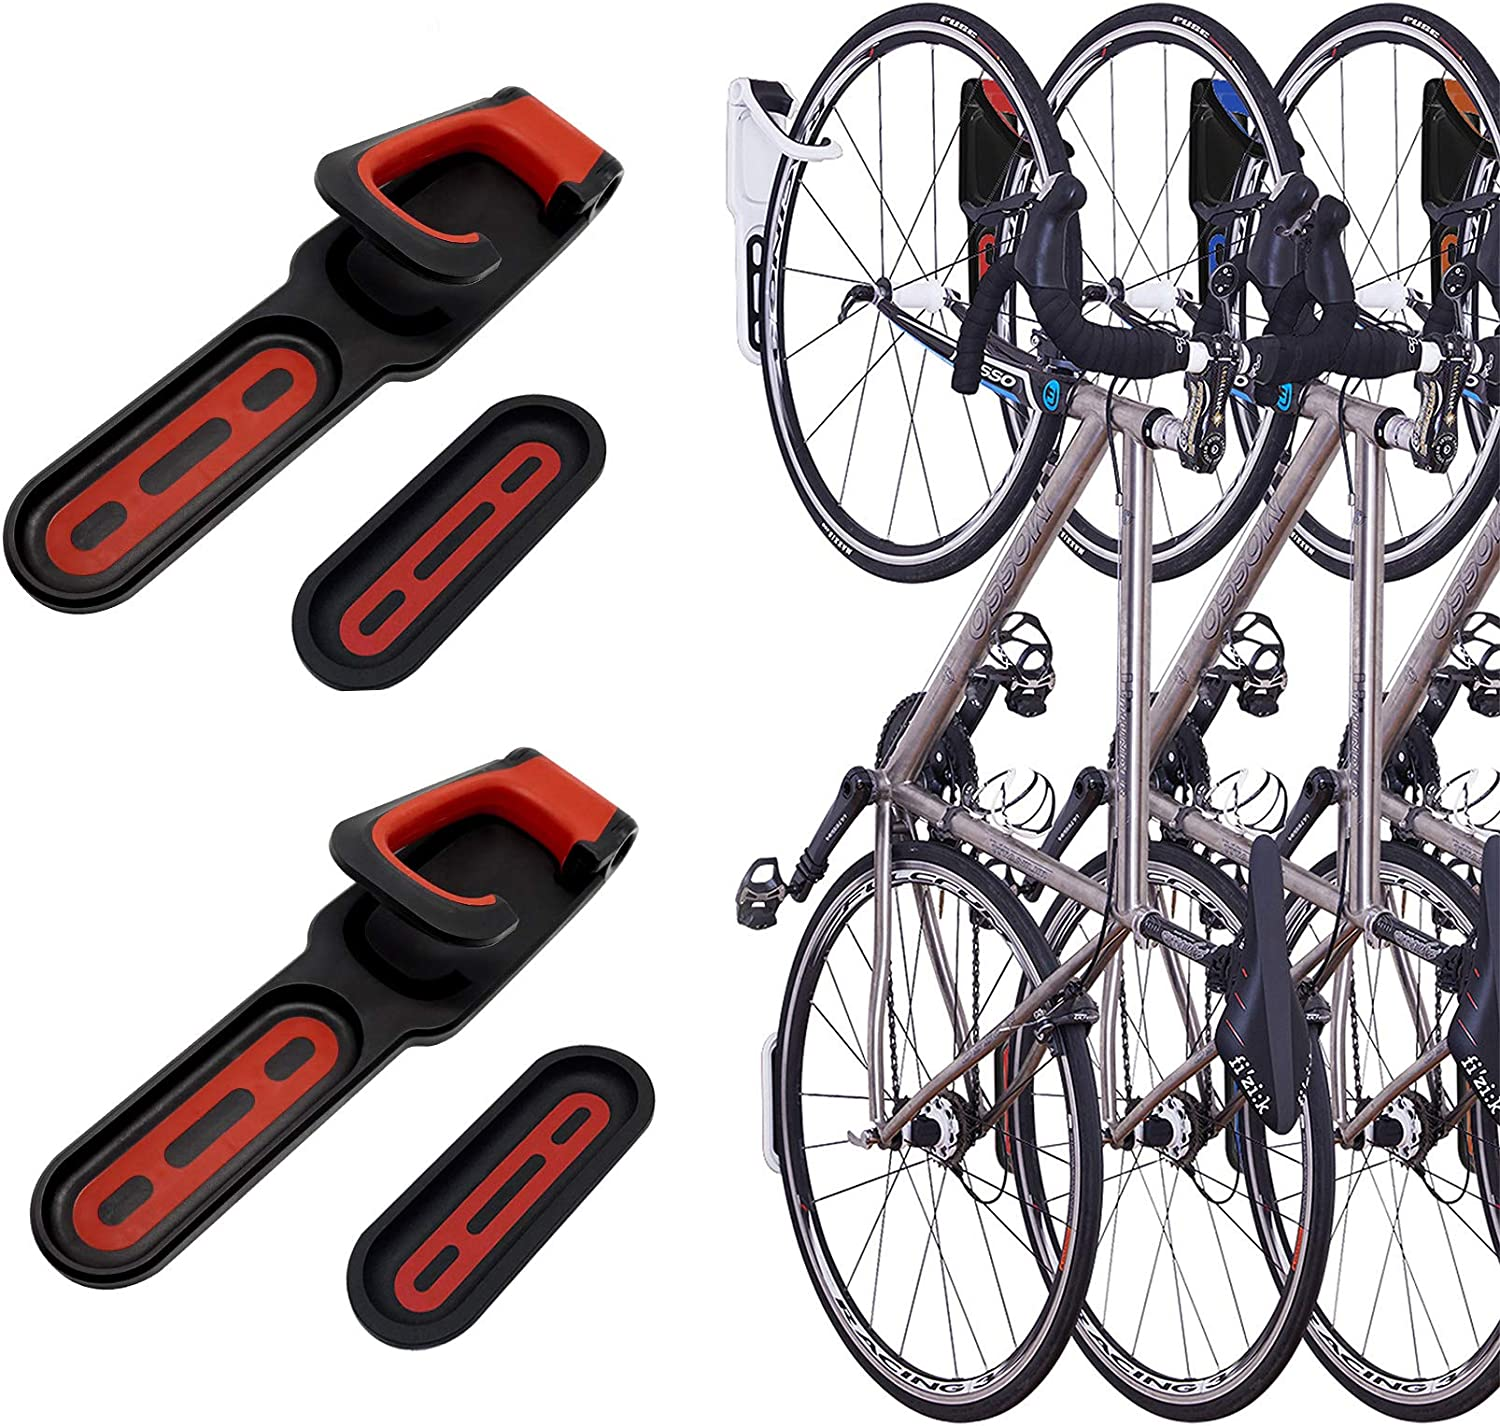 Bicycle Practical Hanging Stand Wall Bracket for Bike Bicycle Blue Wall Mounted Holder Bike Cycle Storage Hooks for Indoor Garage Shed Wall Cycle Storage Bike Rack Saving Stand